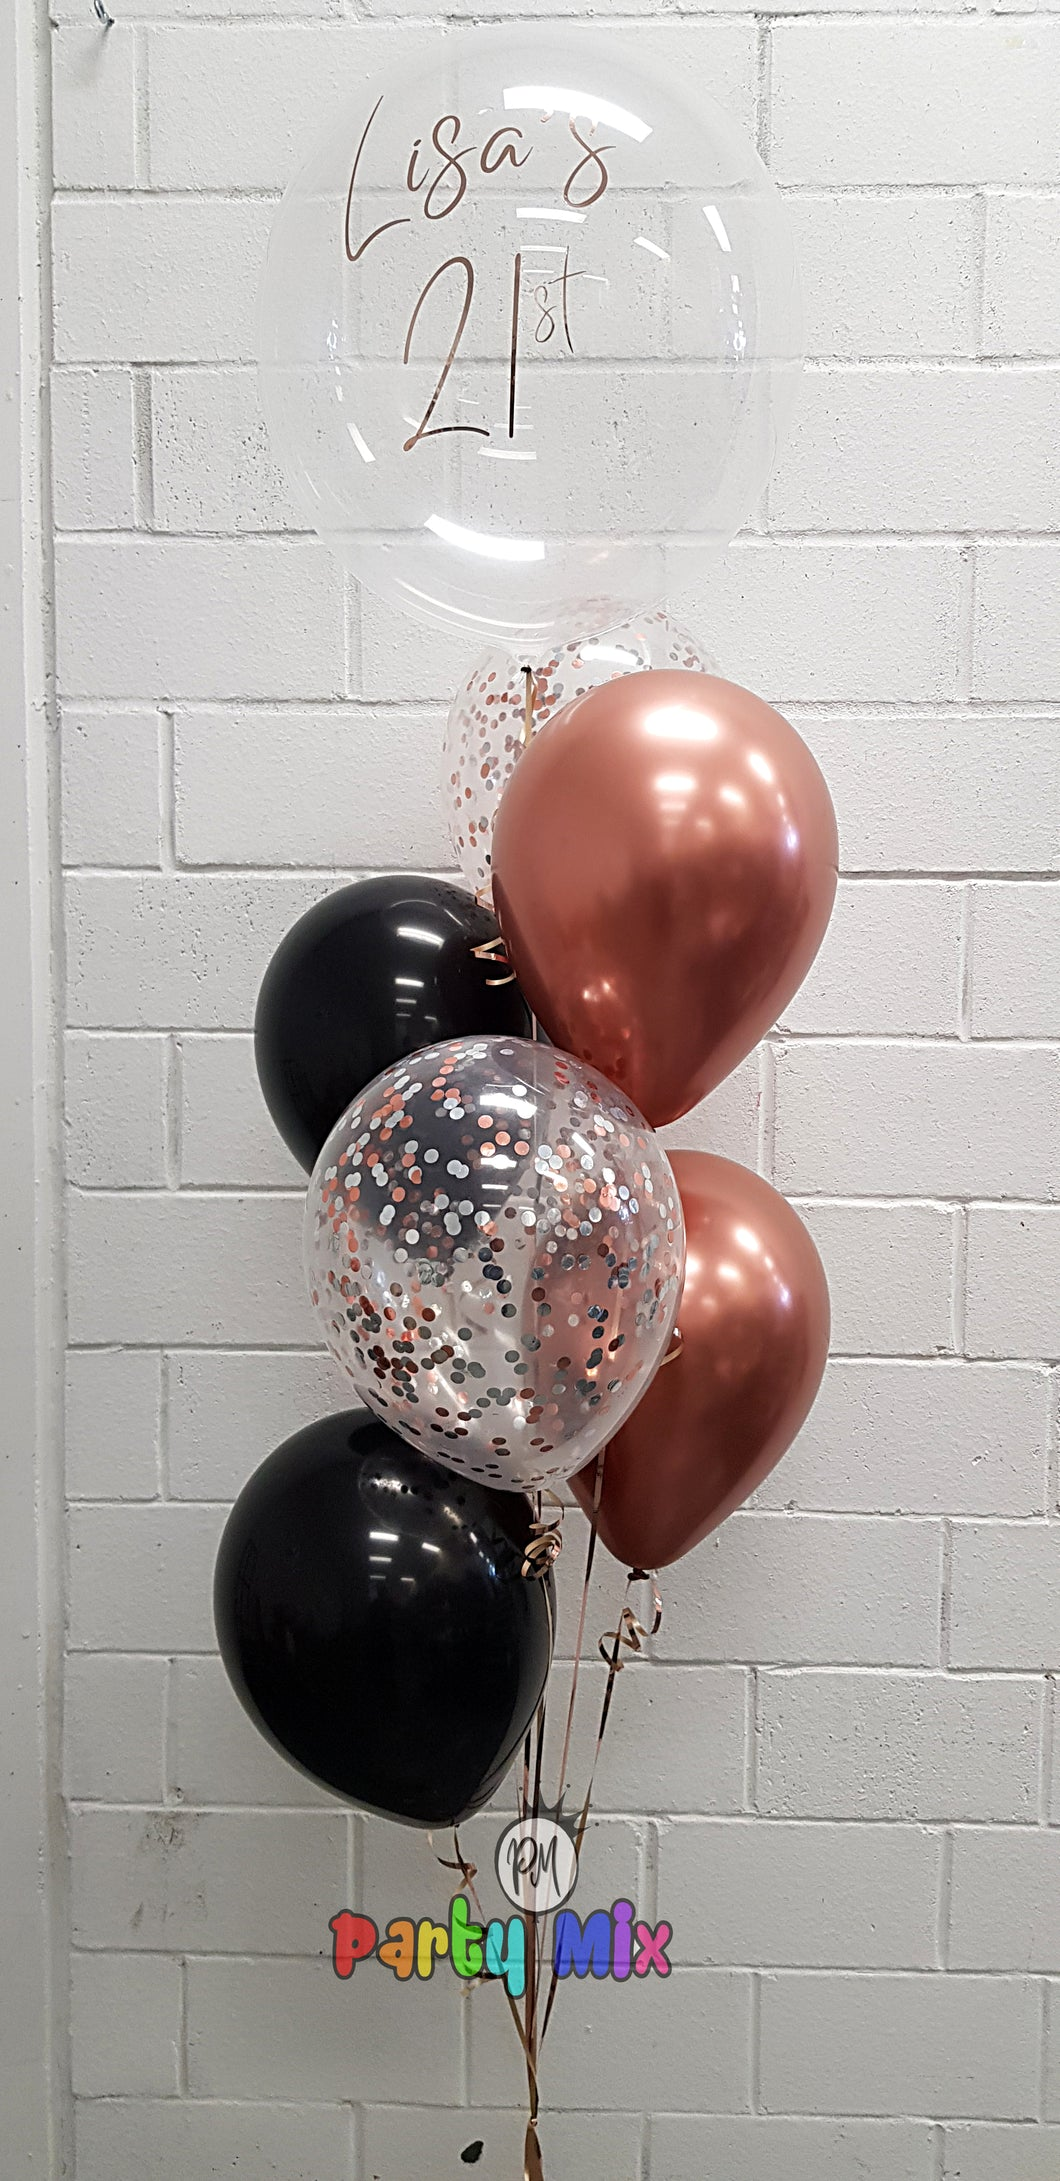 Personalised 51cm Rose Gold Black Balloon Bouquet Party Mix Perth Party Supplies